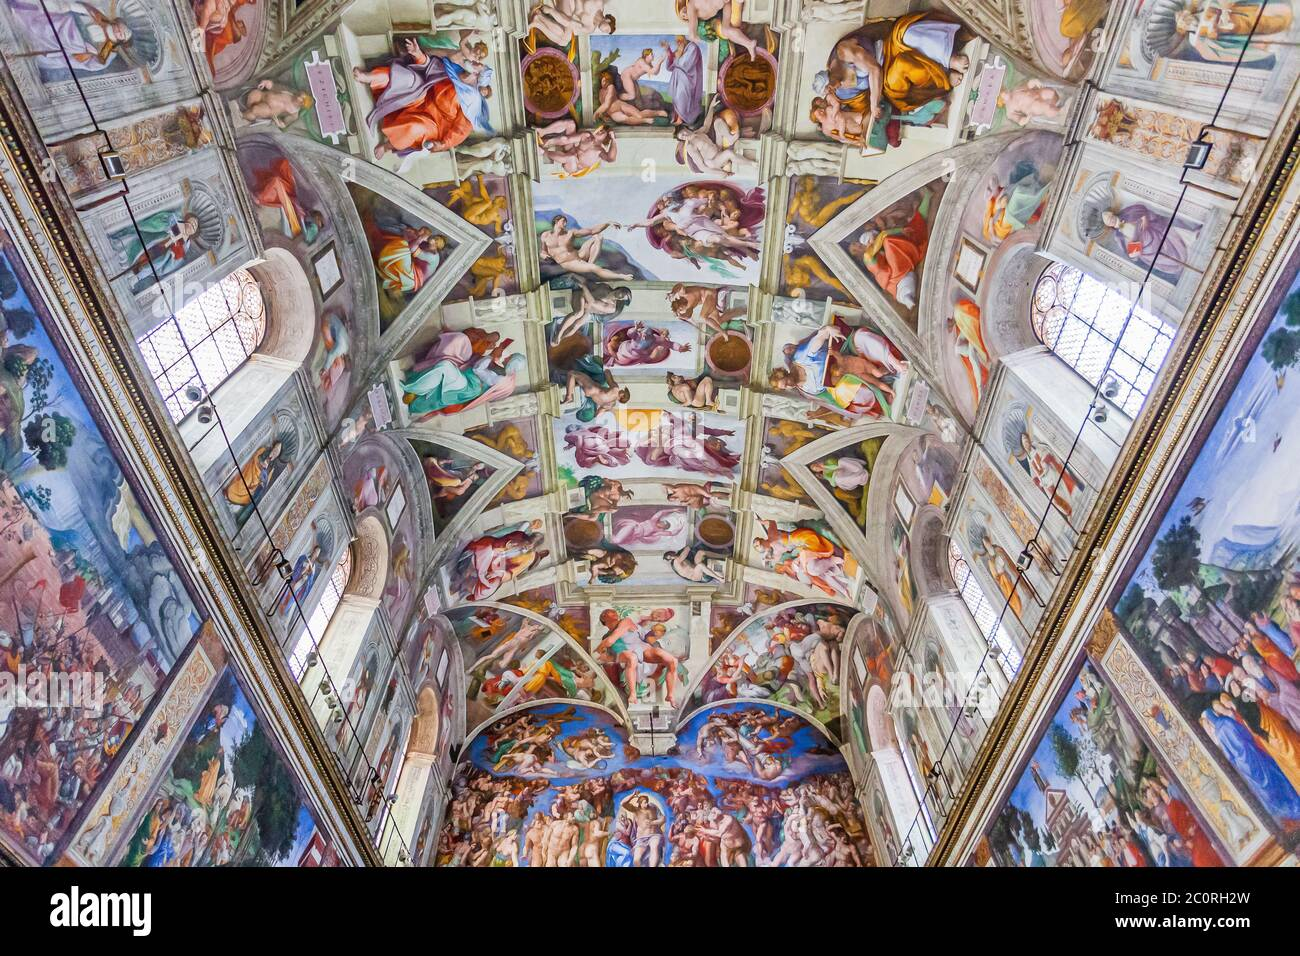 Rome, Italy - November 3, 2019: Ceiling of the Sistine chapel in the Vatican museum. Stock Photo